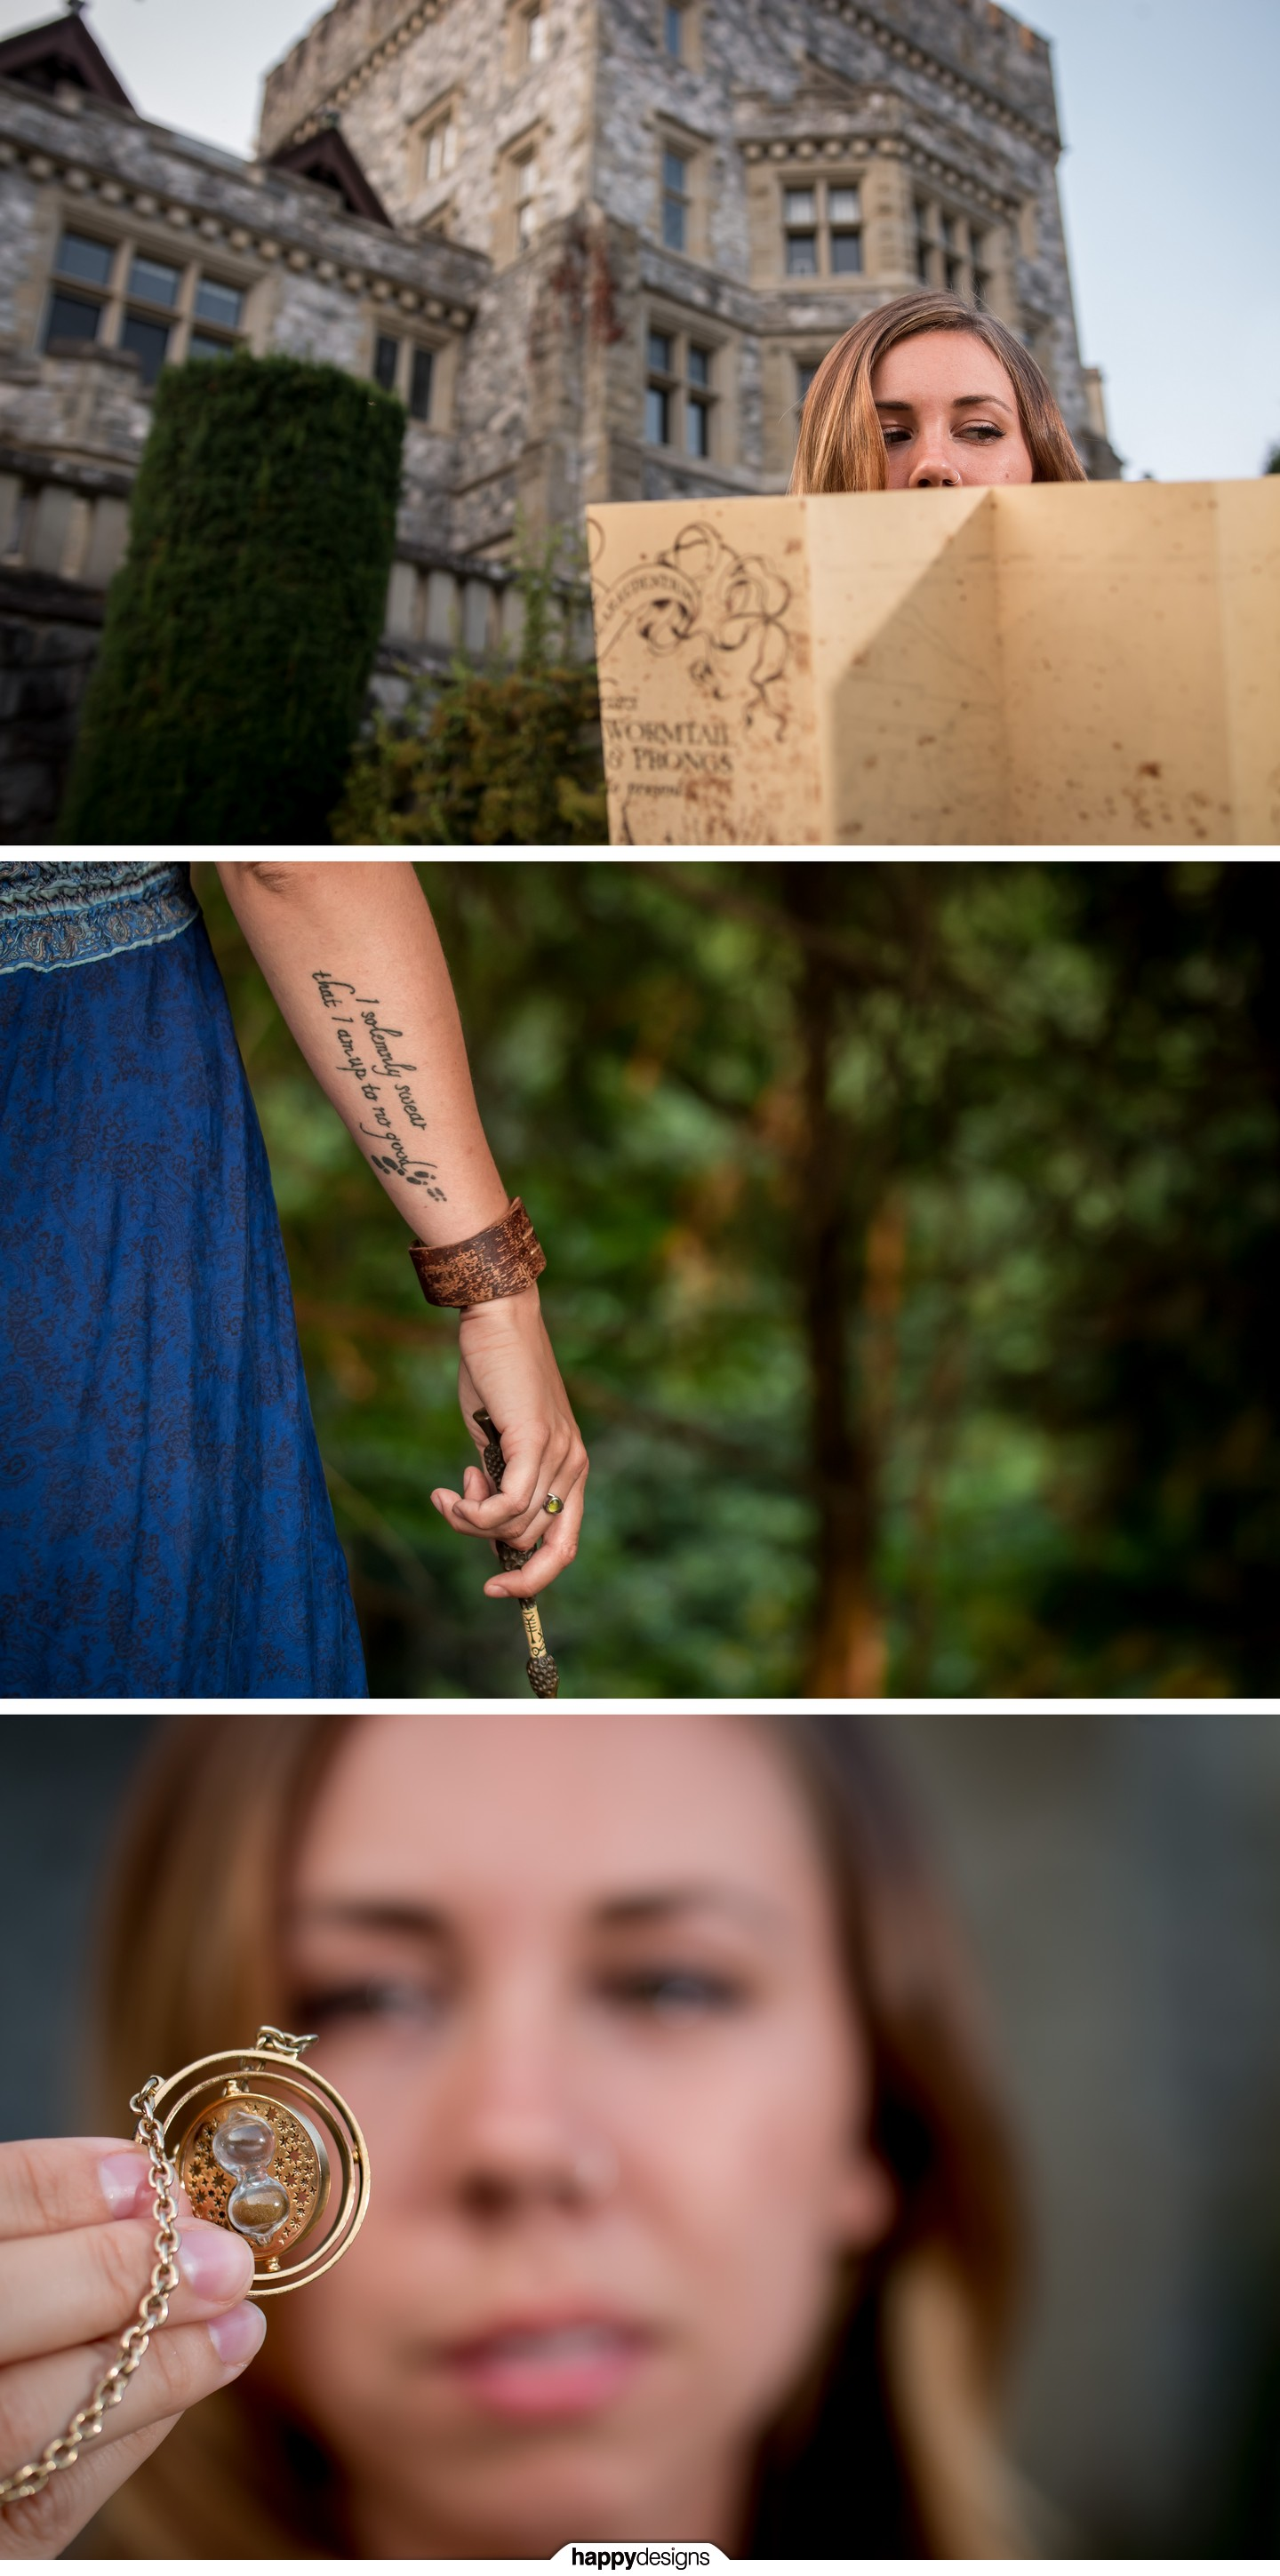 20150804 - tattoo triptych - Erica Champion-0001